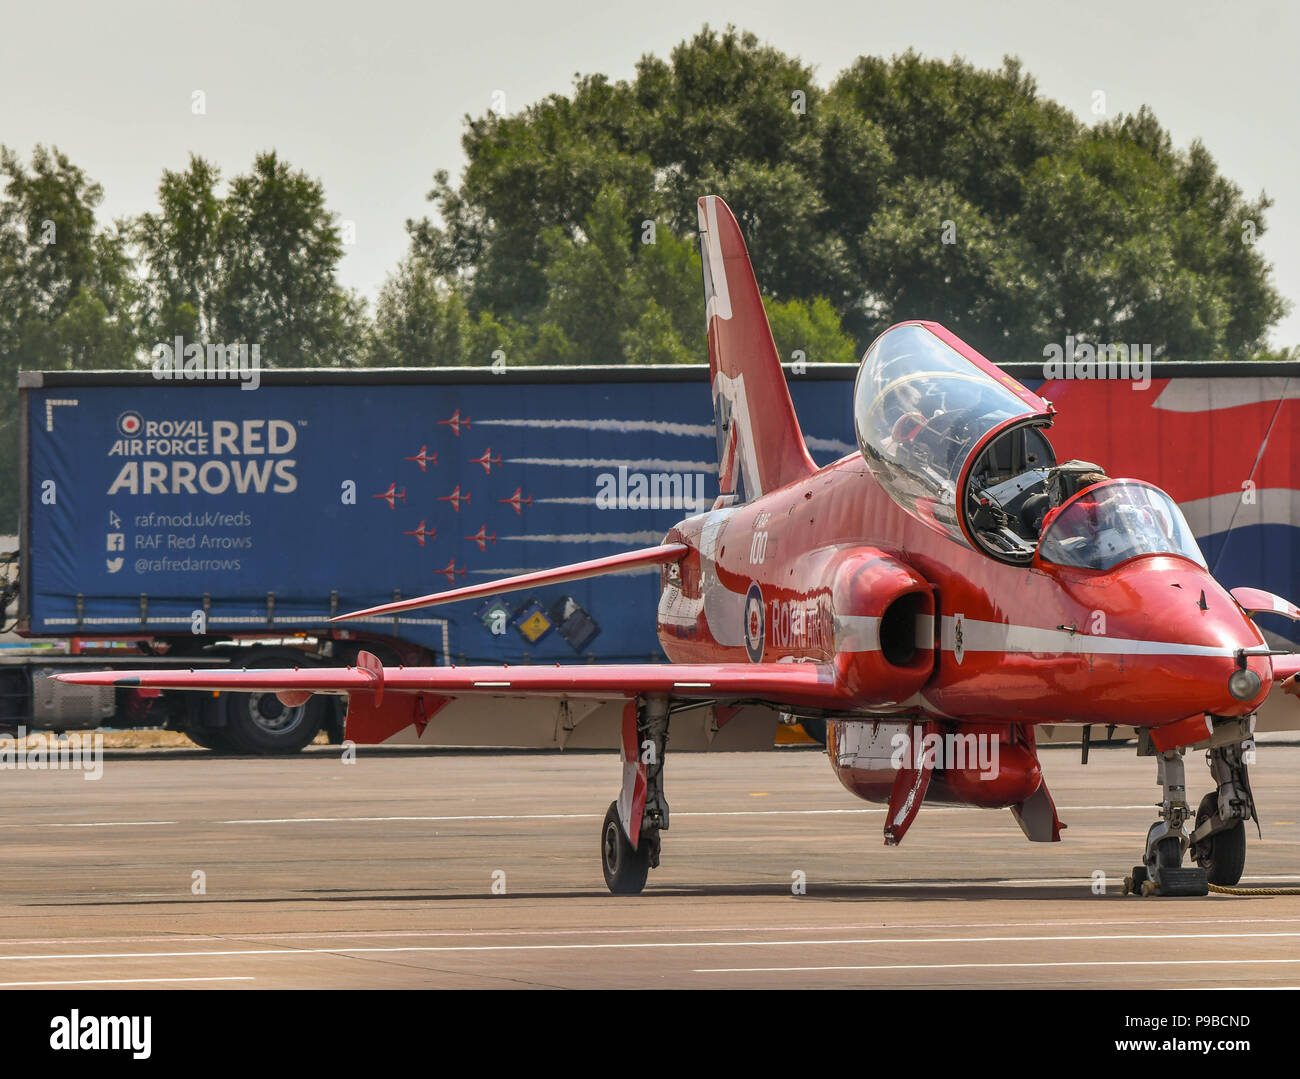 A Hawk jet of the Royal Air Force aerobatic team, the Red Arrows, at the Royal International Air Tattoo 2018. The team's lorry is in the background - Stock Image